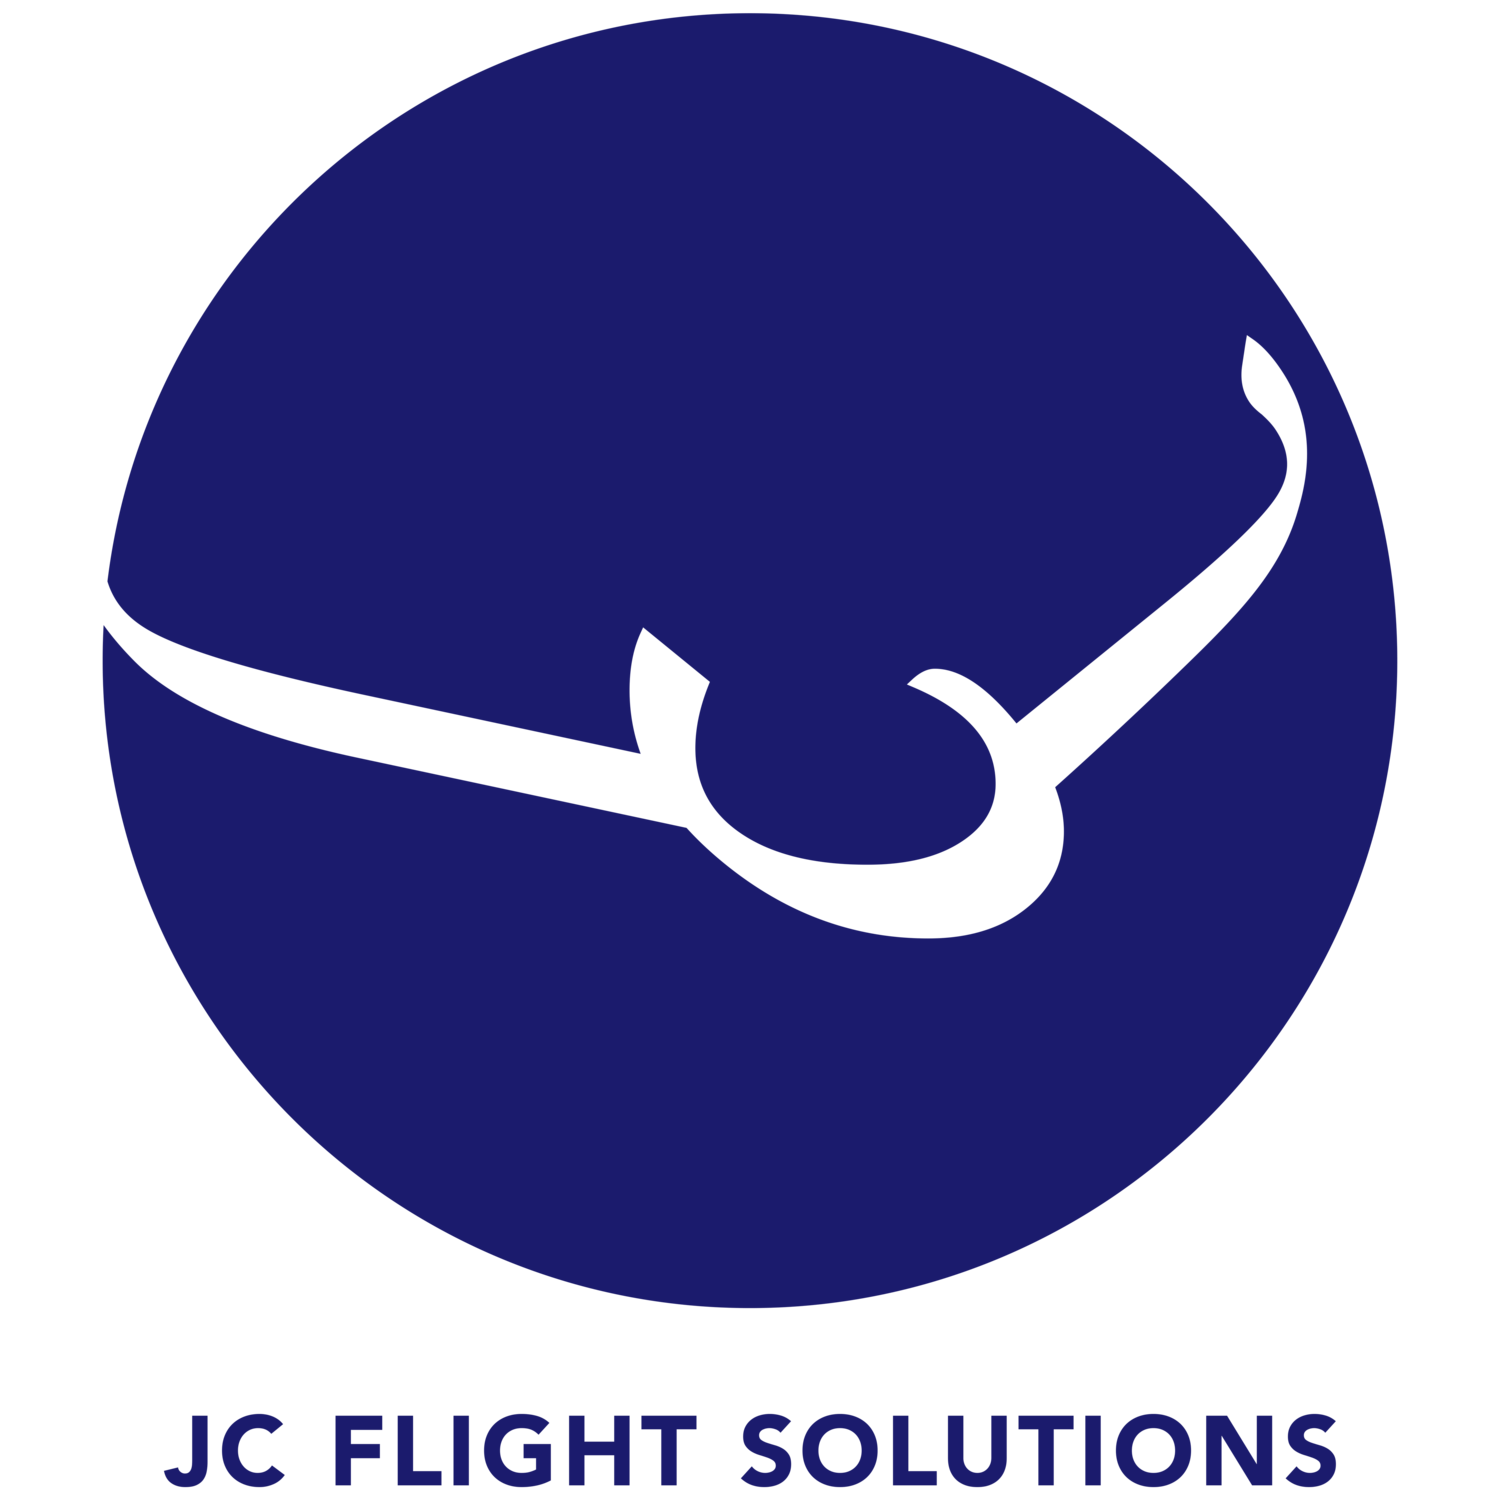 JC Flight Solutions